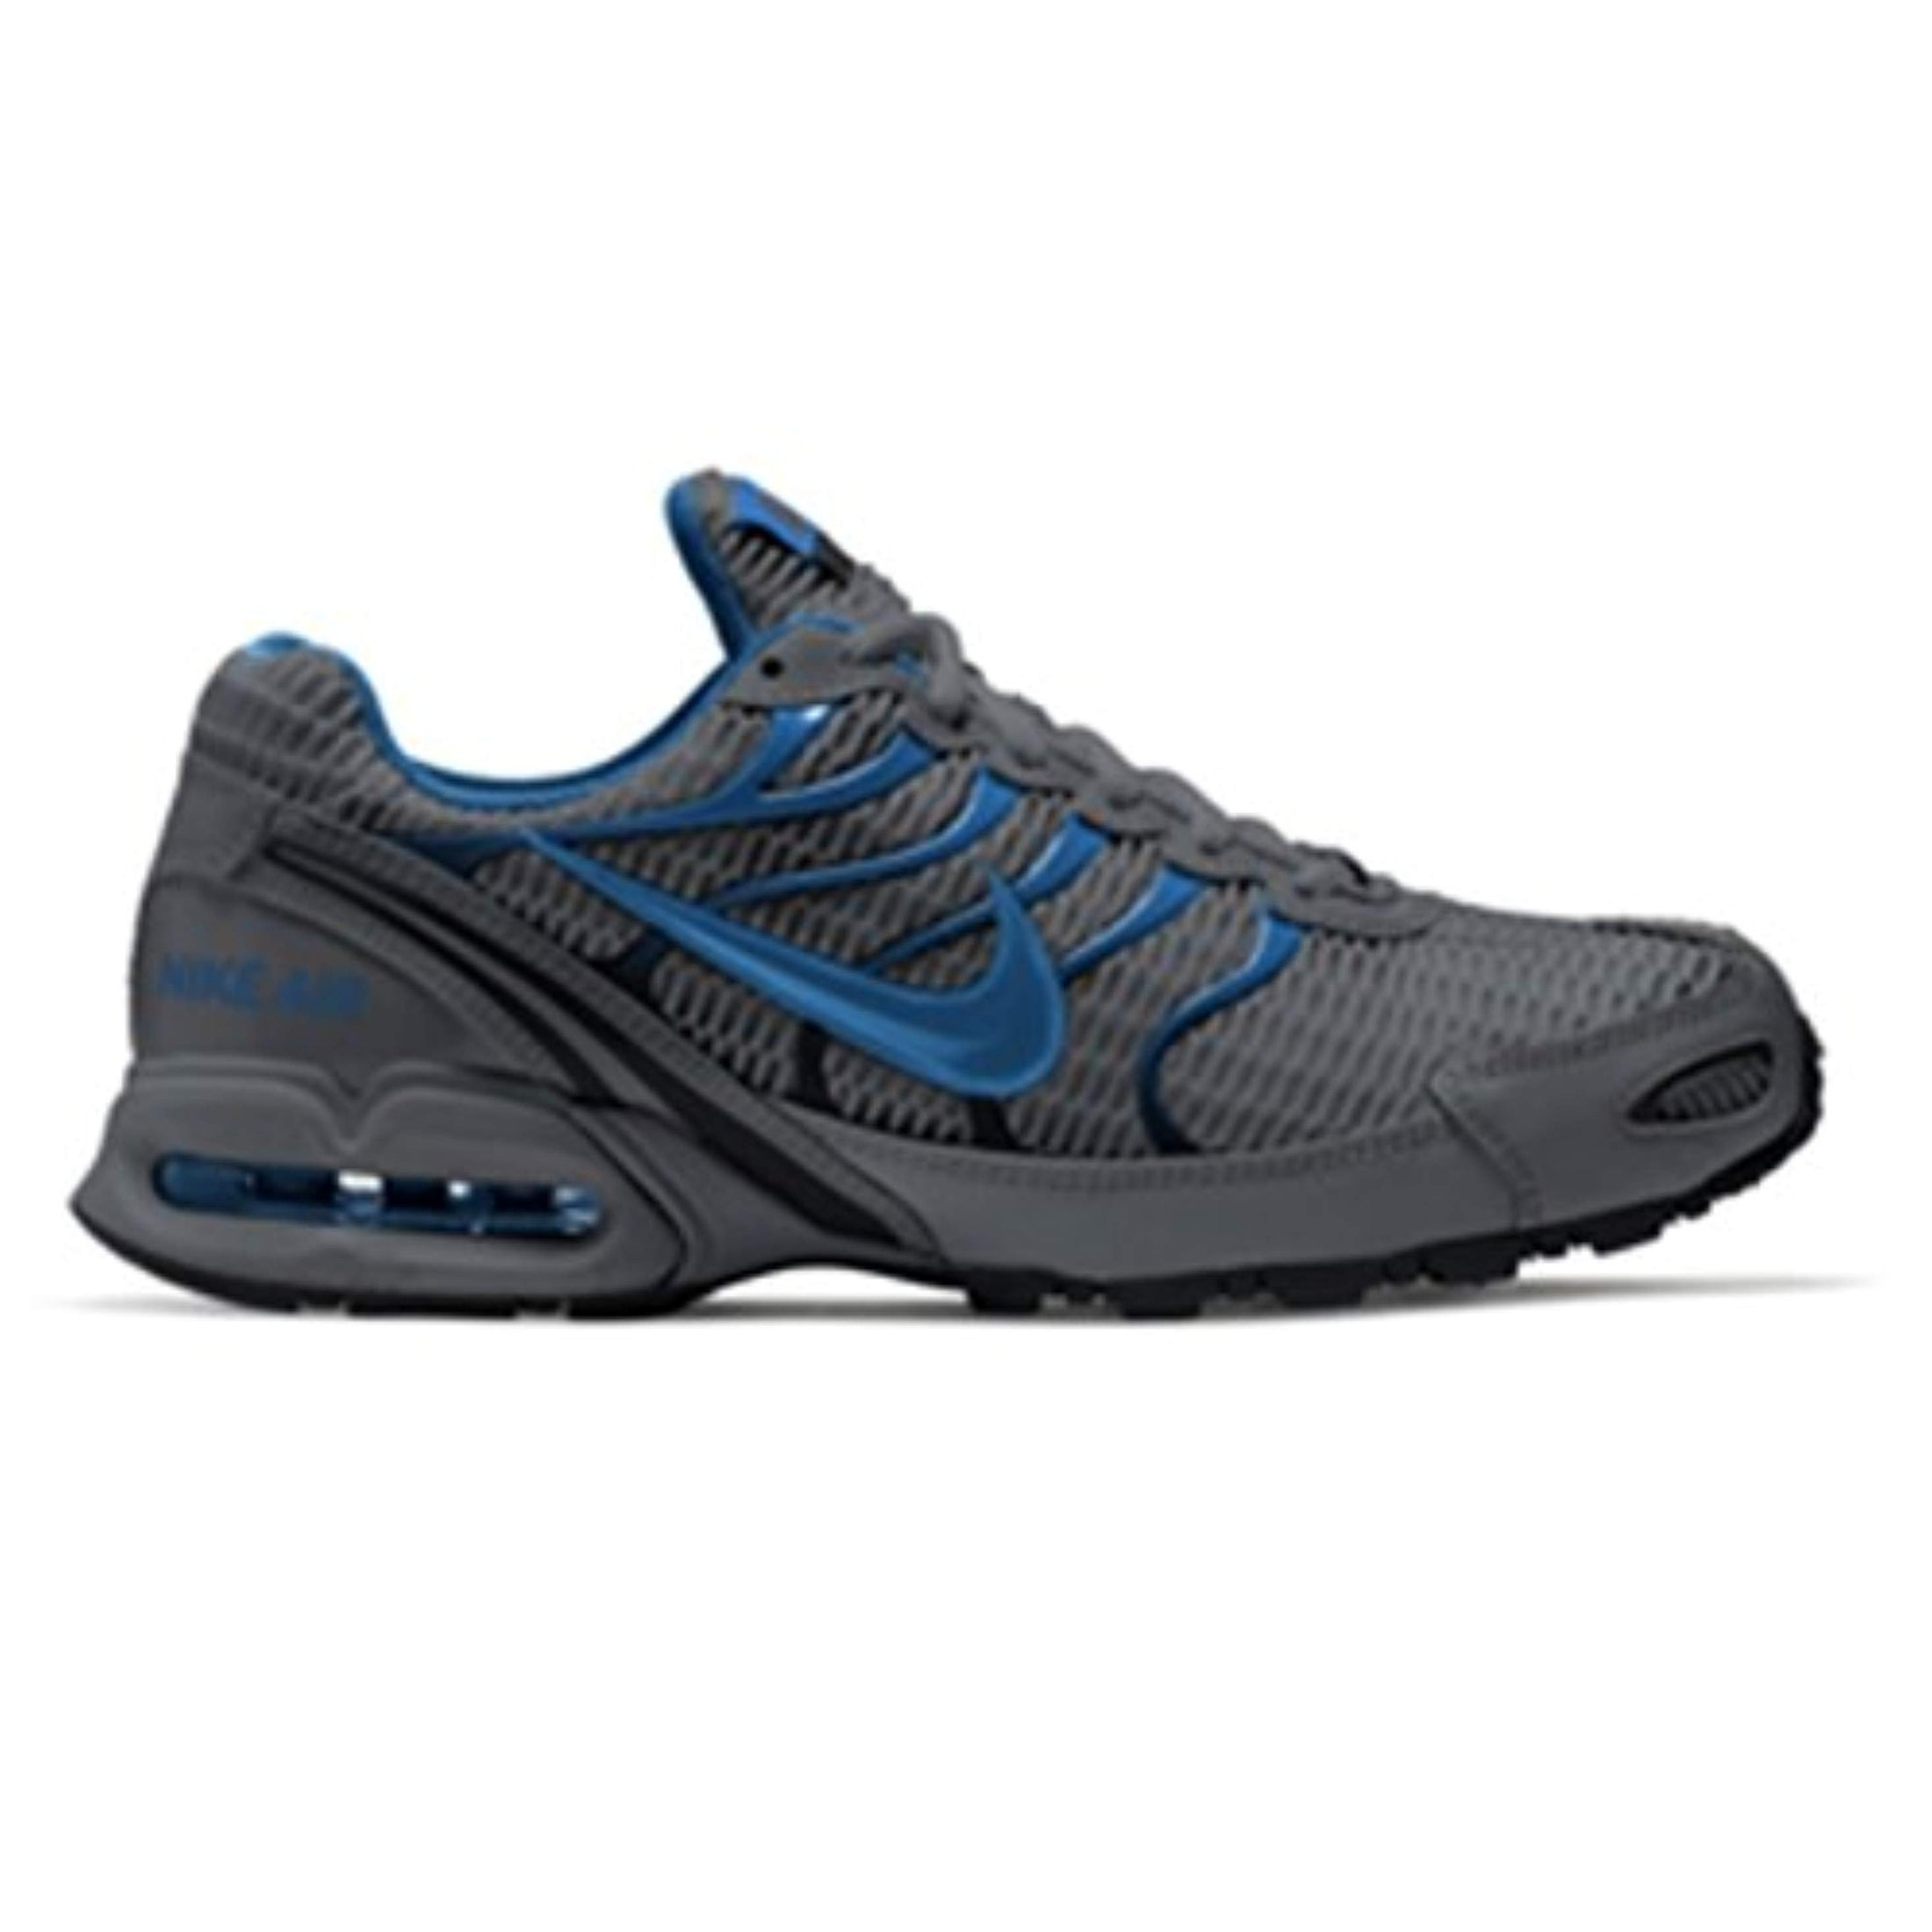 on sale ce112 91ab8 Shop Nike Mens Air Max Torch 4, Cool Grey Military Blue-Black - Free  Shipping Today - Overstock - 27125100